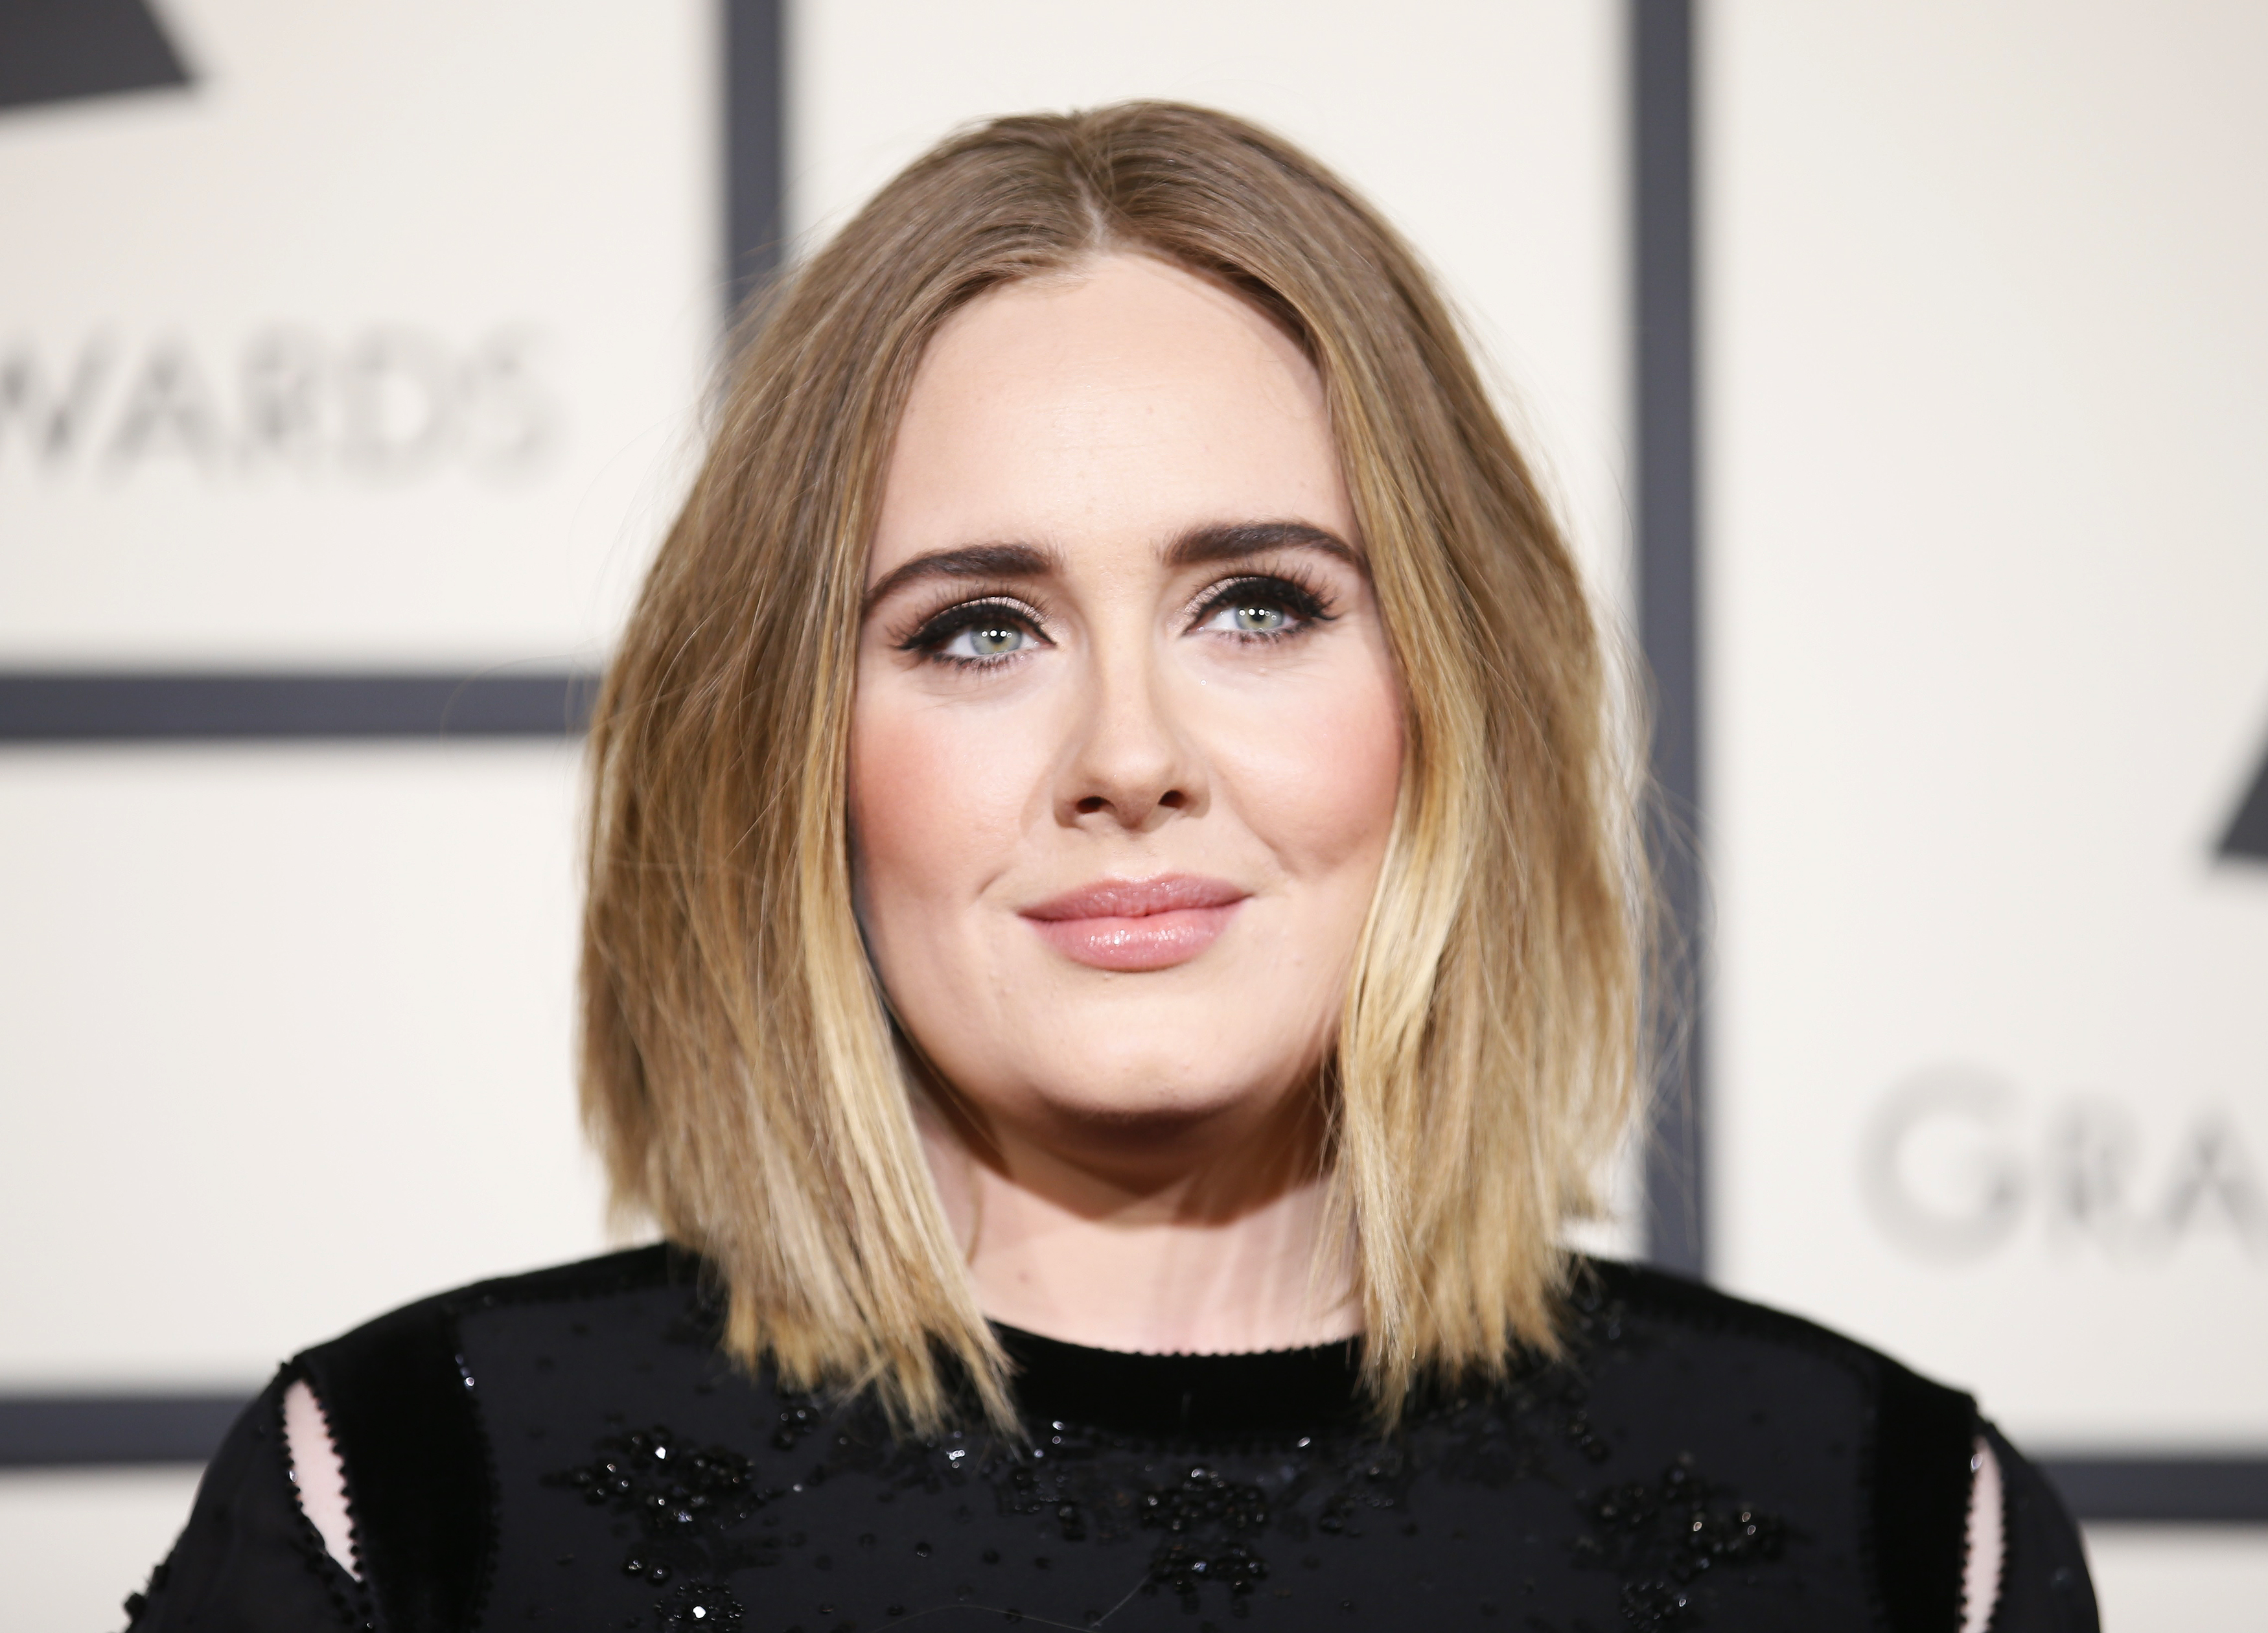 Singer Adele arrives at the 58th Grammy Awards in Los Angeles, California February 15, 2016.